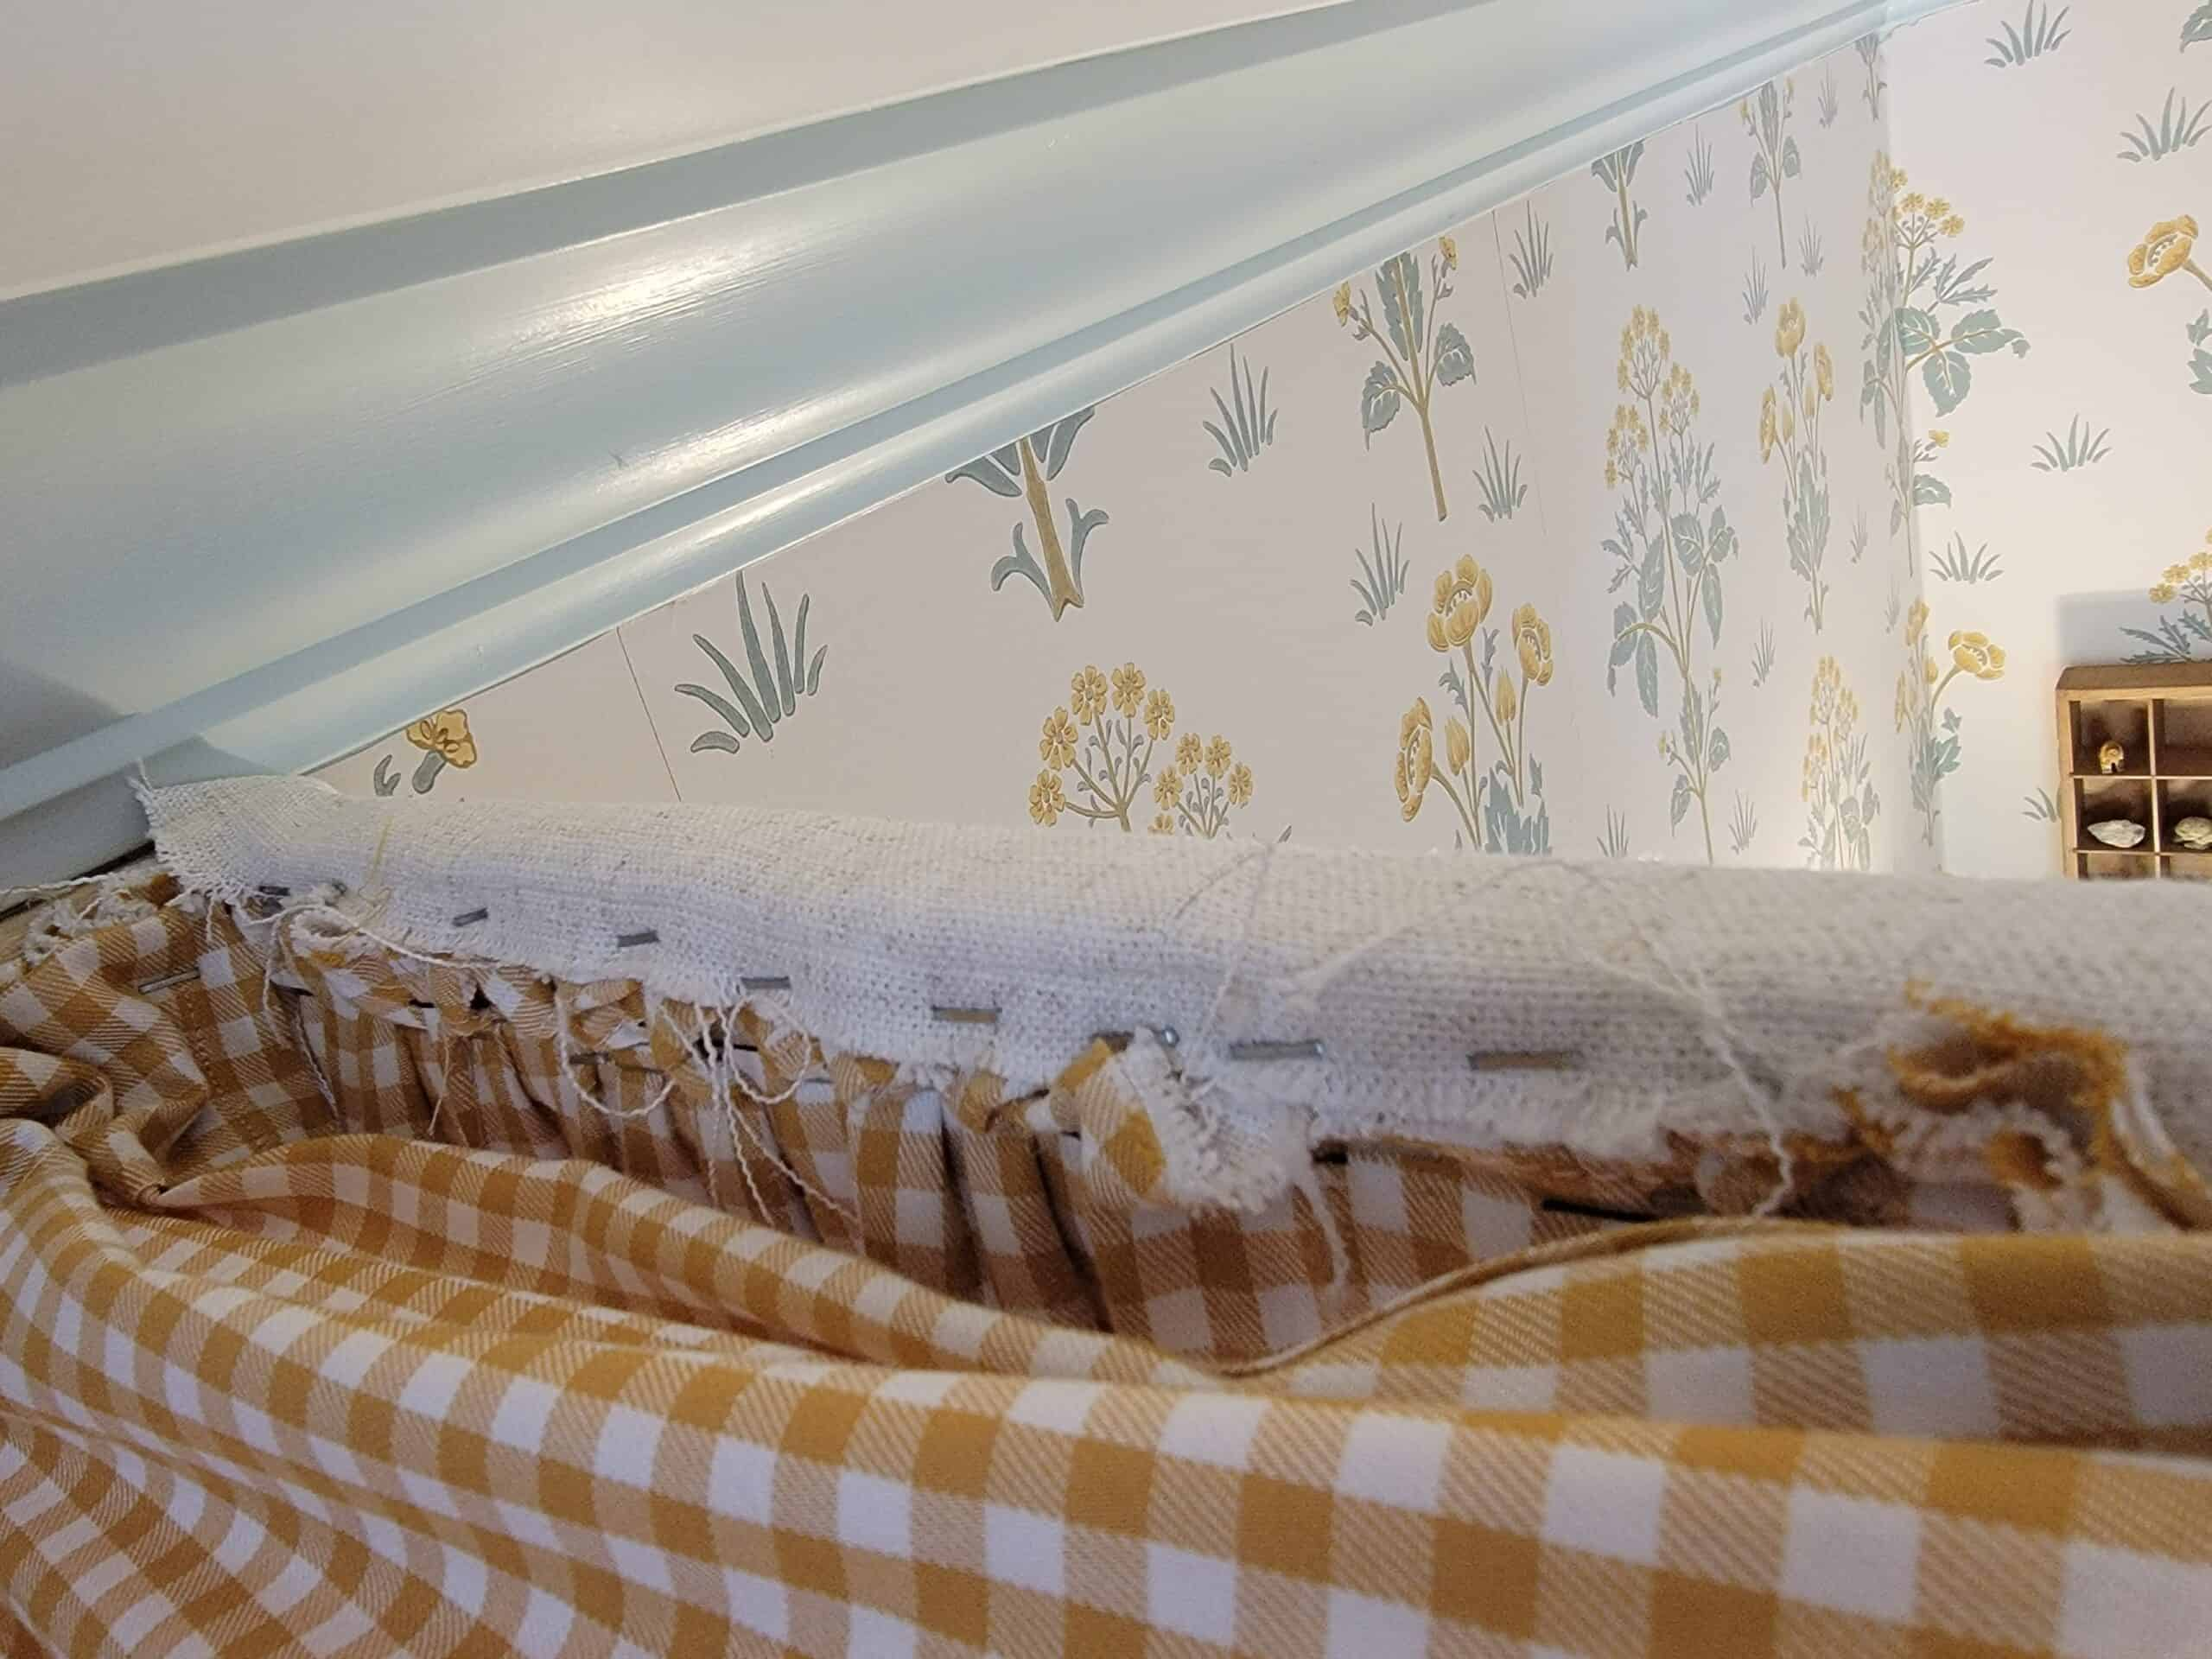 fabric stapled to the inside of headboard canopy